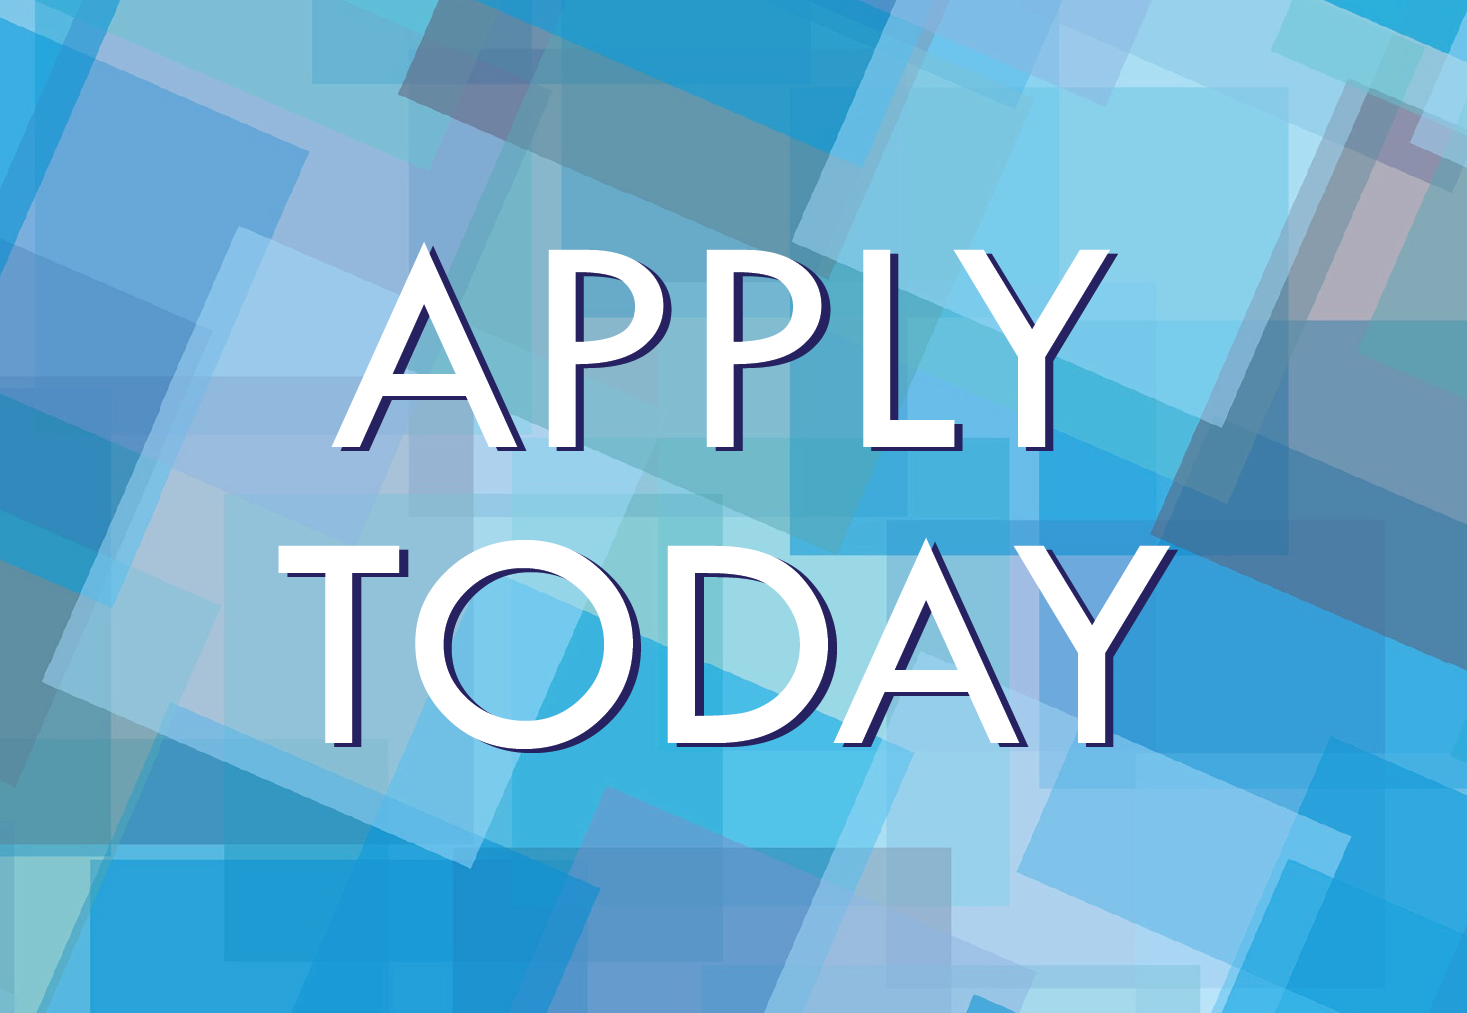 Apply Today on Blue tile-01.png